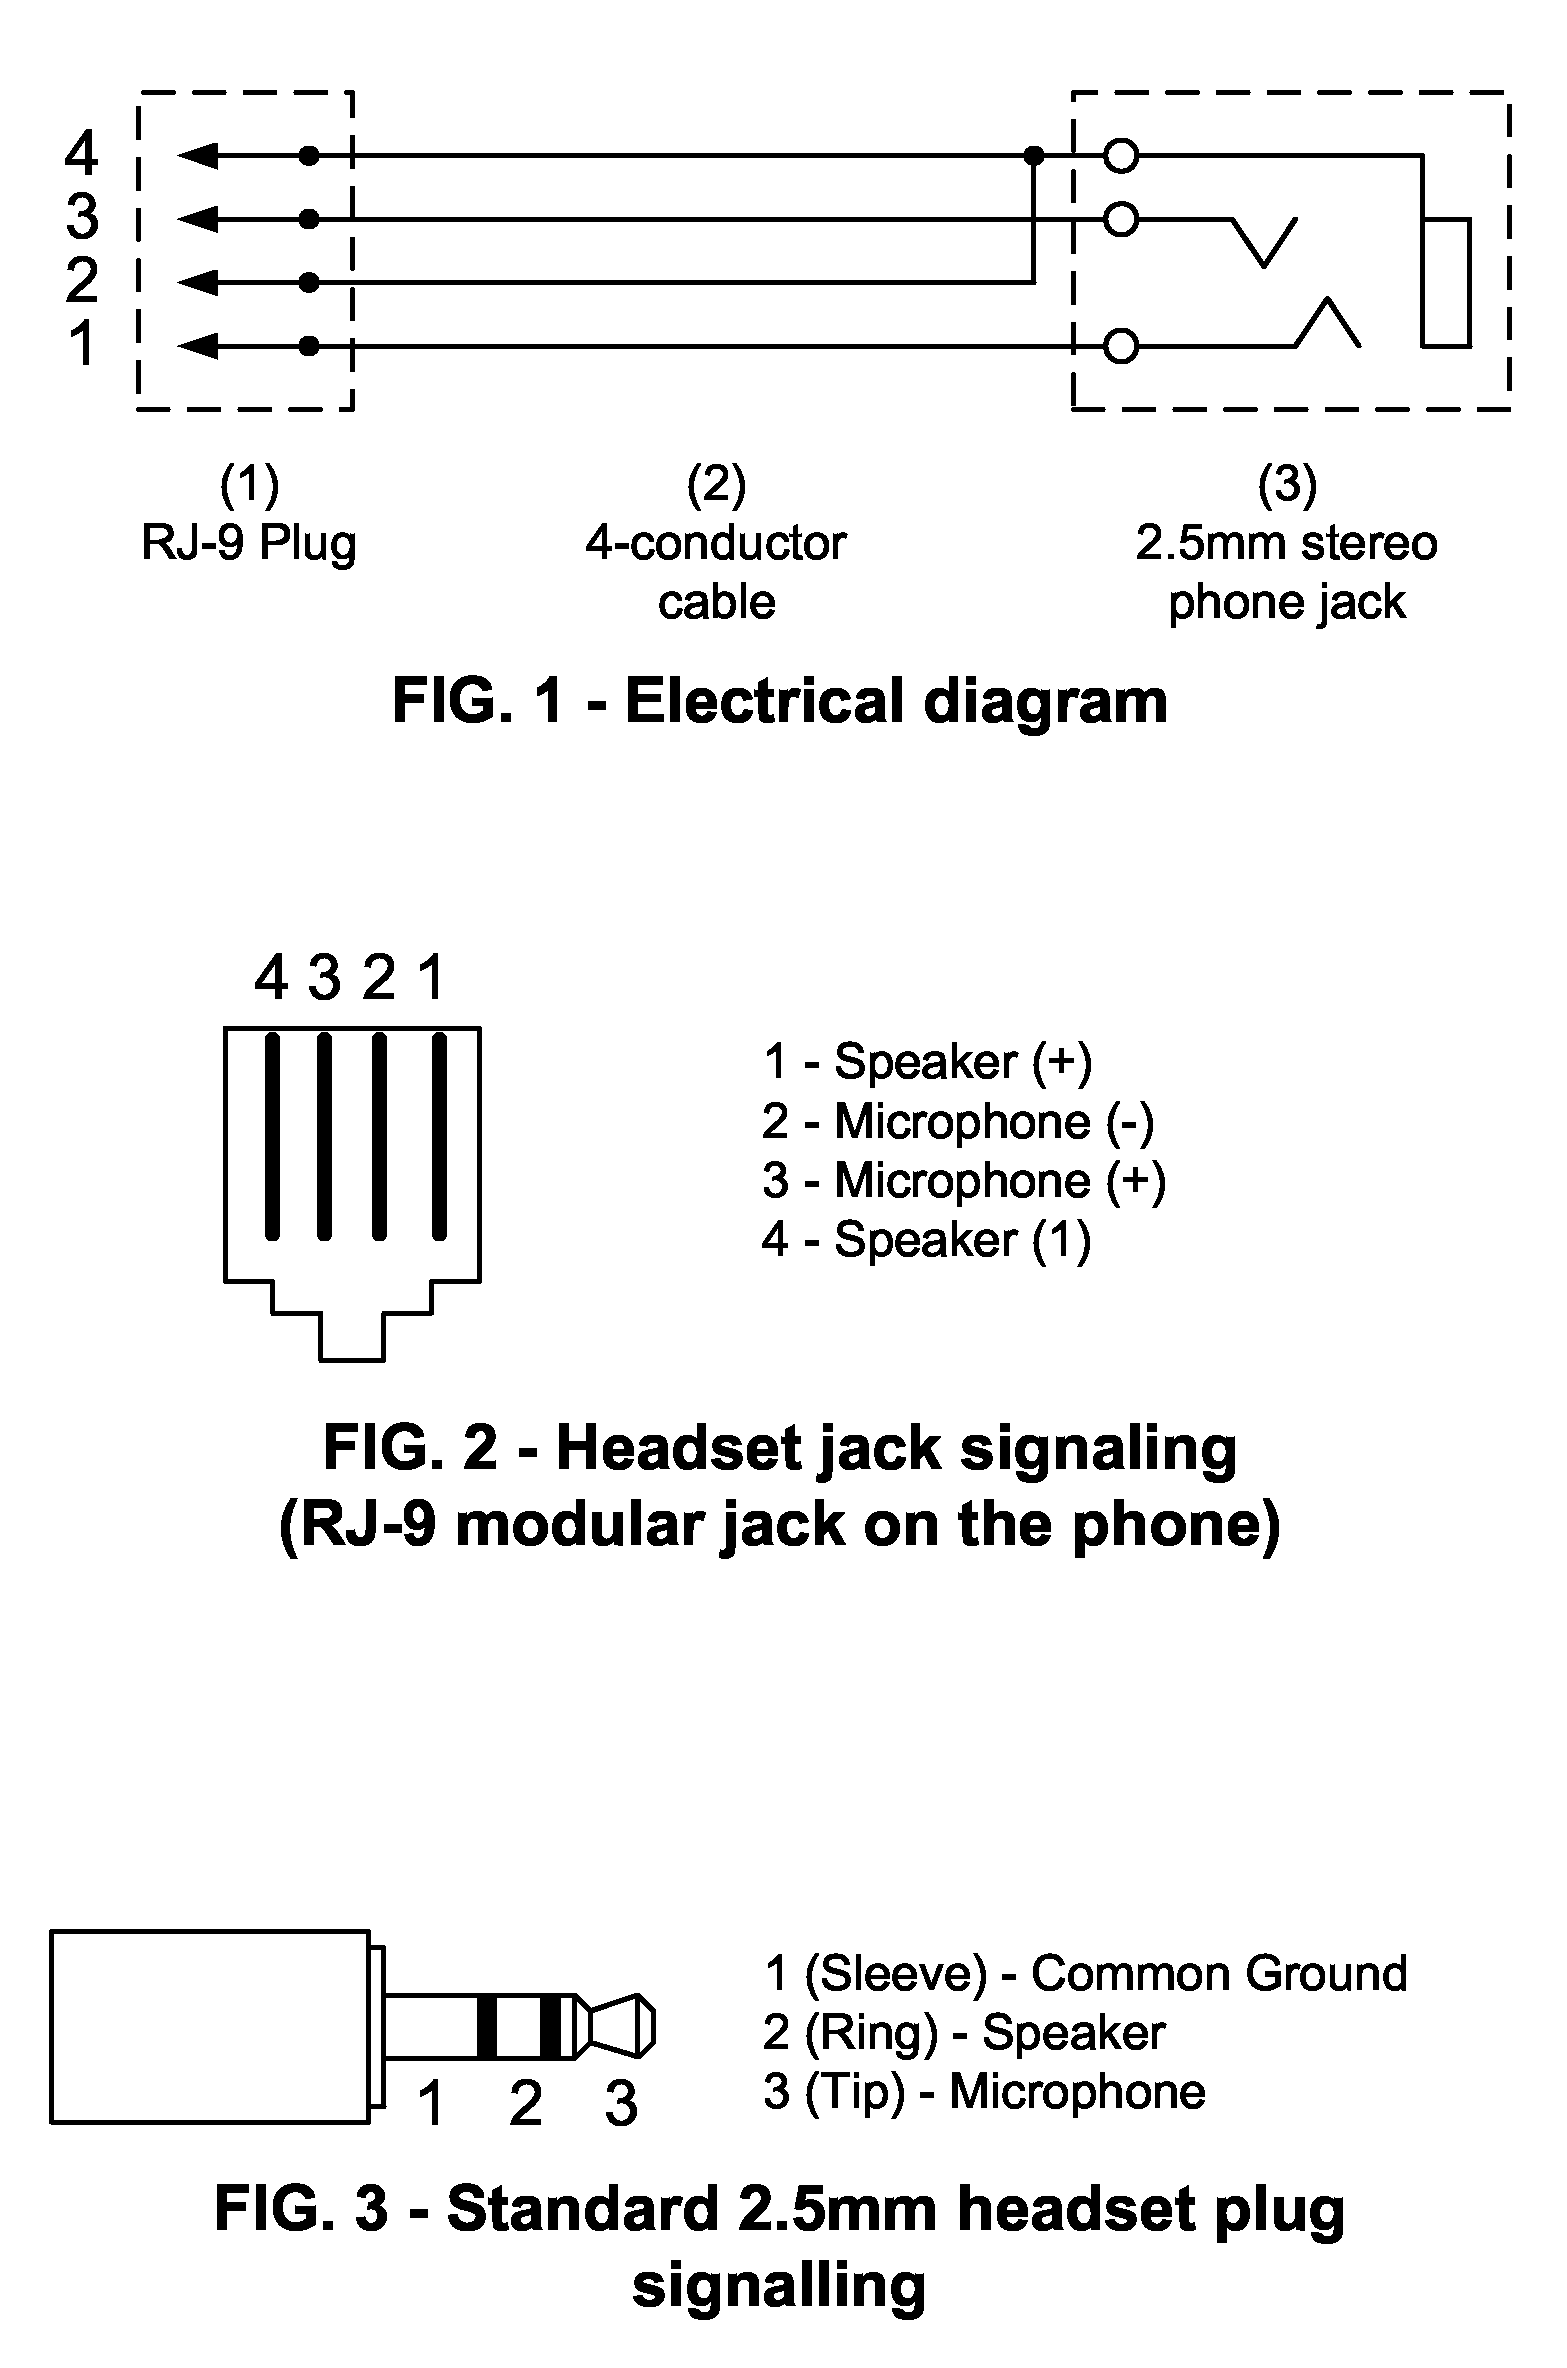 Headphone Jack Wiring Diagram also Plantronics Headset Wiring Diagram furthermore Aviation Glamour Girls further 5 Pin XLR Wiring Diagram furthermore Stereo Jack Wiring Diagram. on 3 5 mm stereo plug wiring diagram